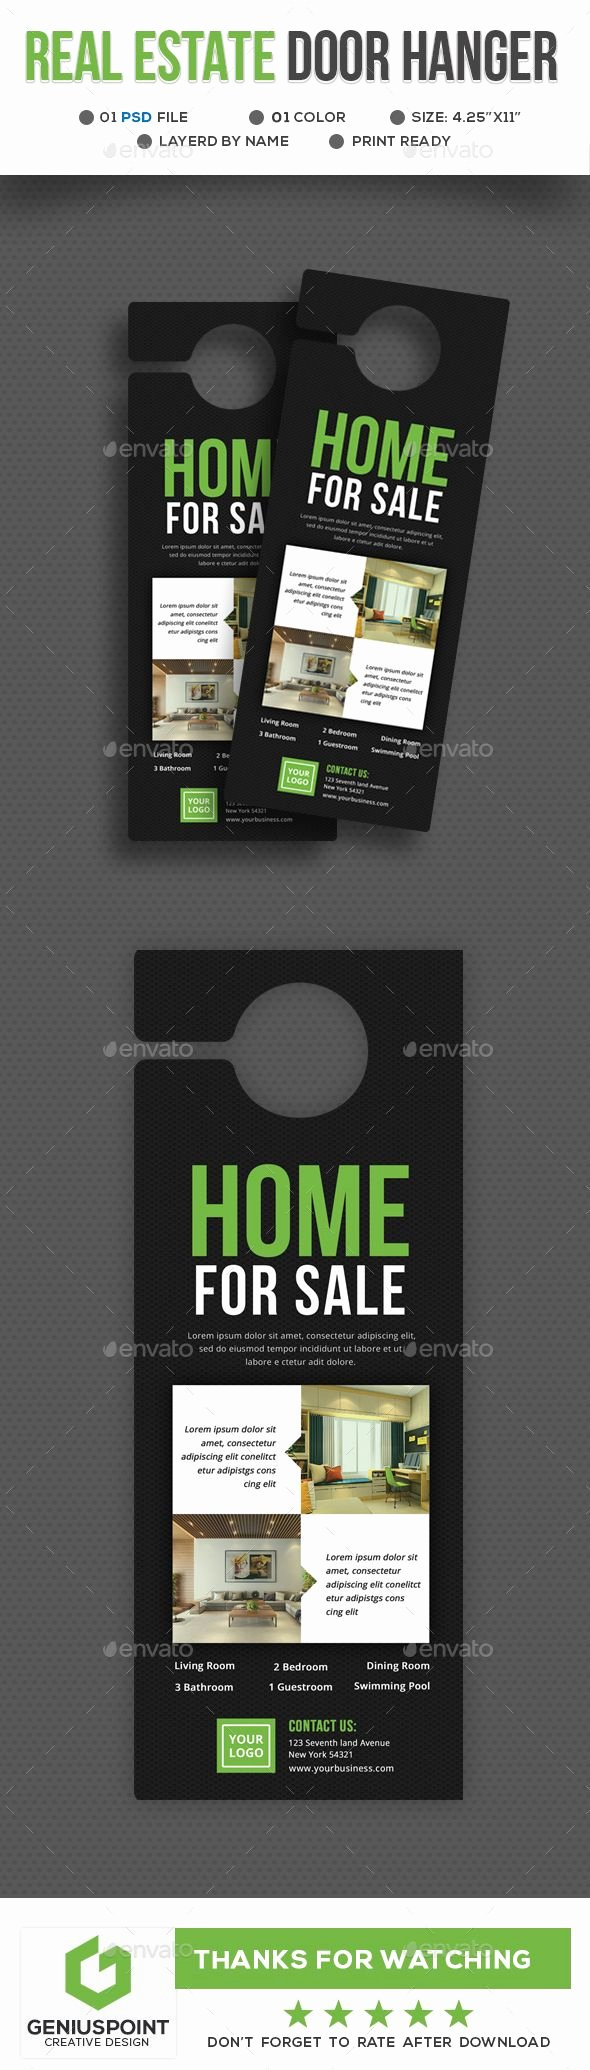 Door Hanger Template Psd Fresh Best 25 Door Hanger Template Ideas On Pinterest